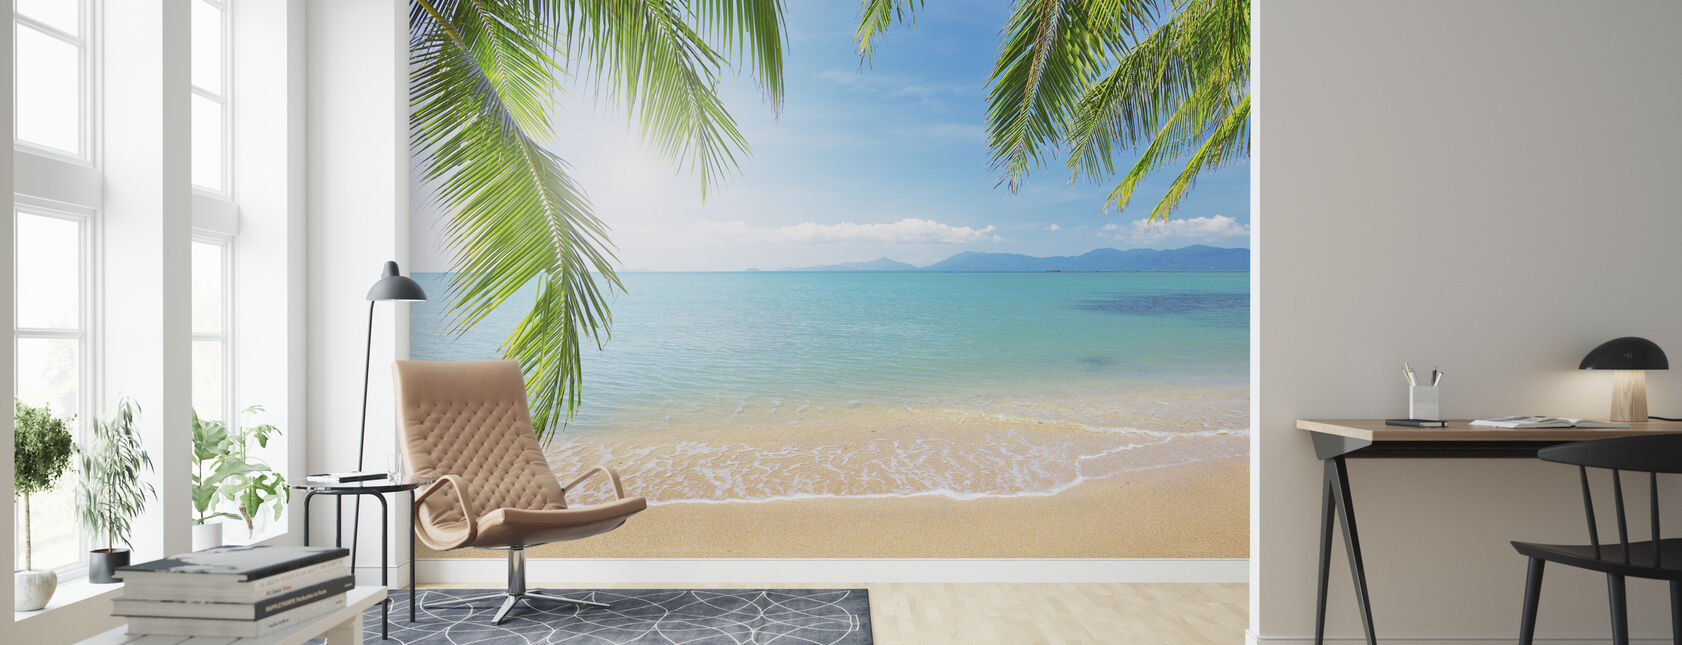 Tropical View from under a Palm Tree - Wallpaper - Living Room